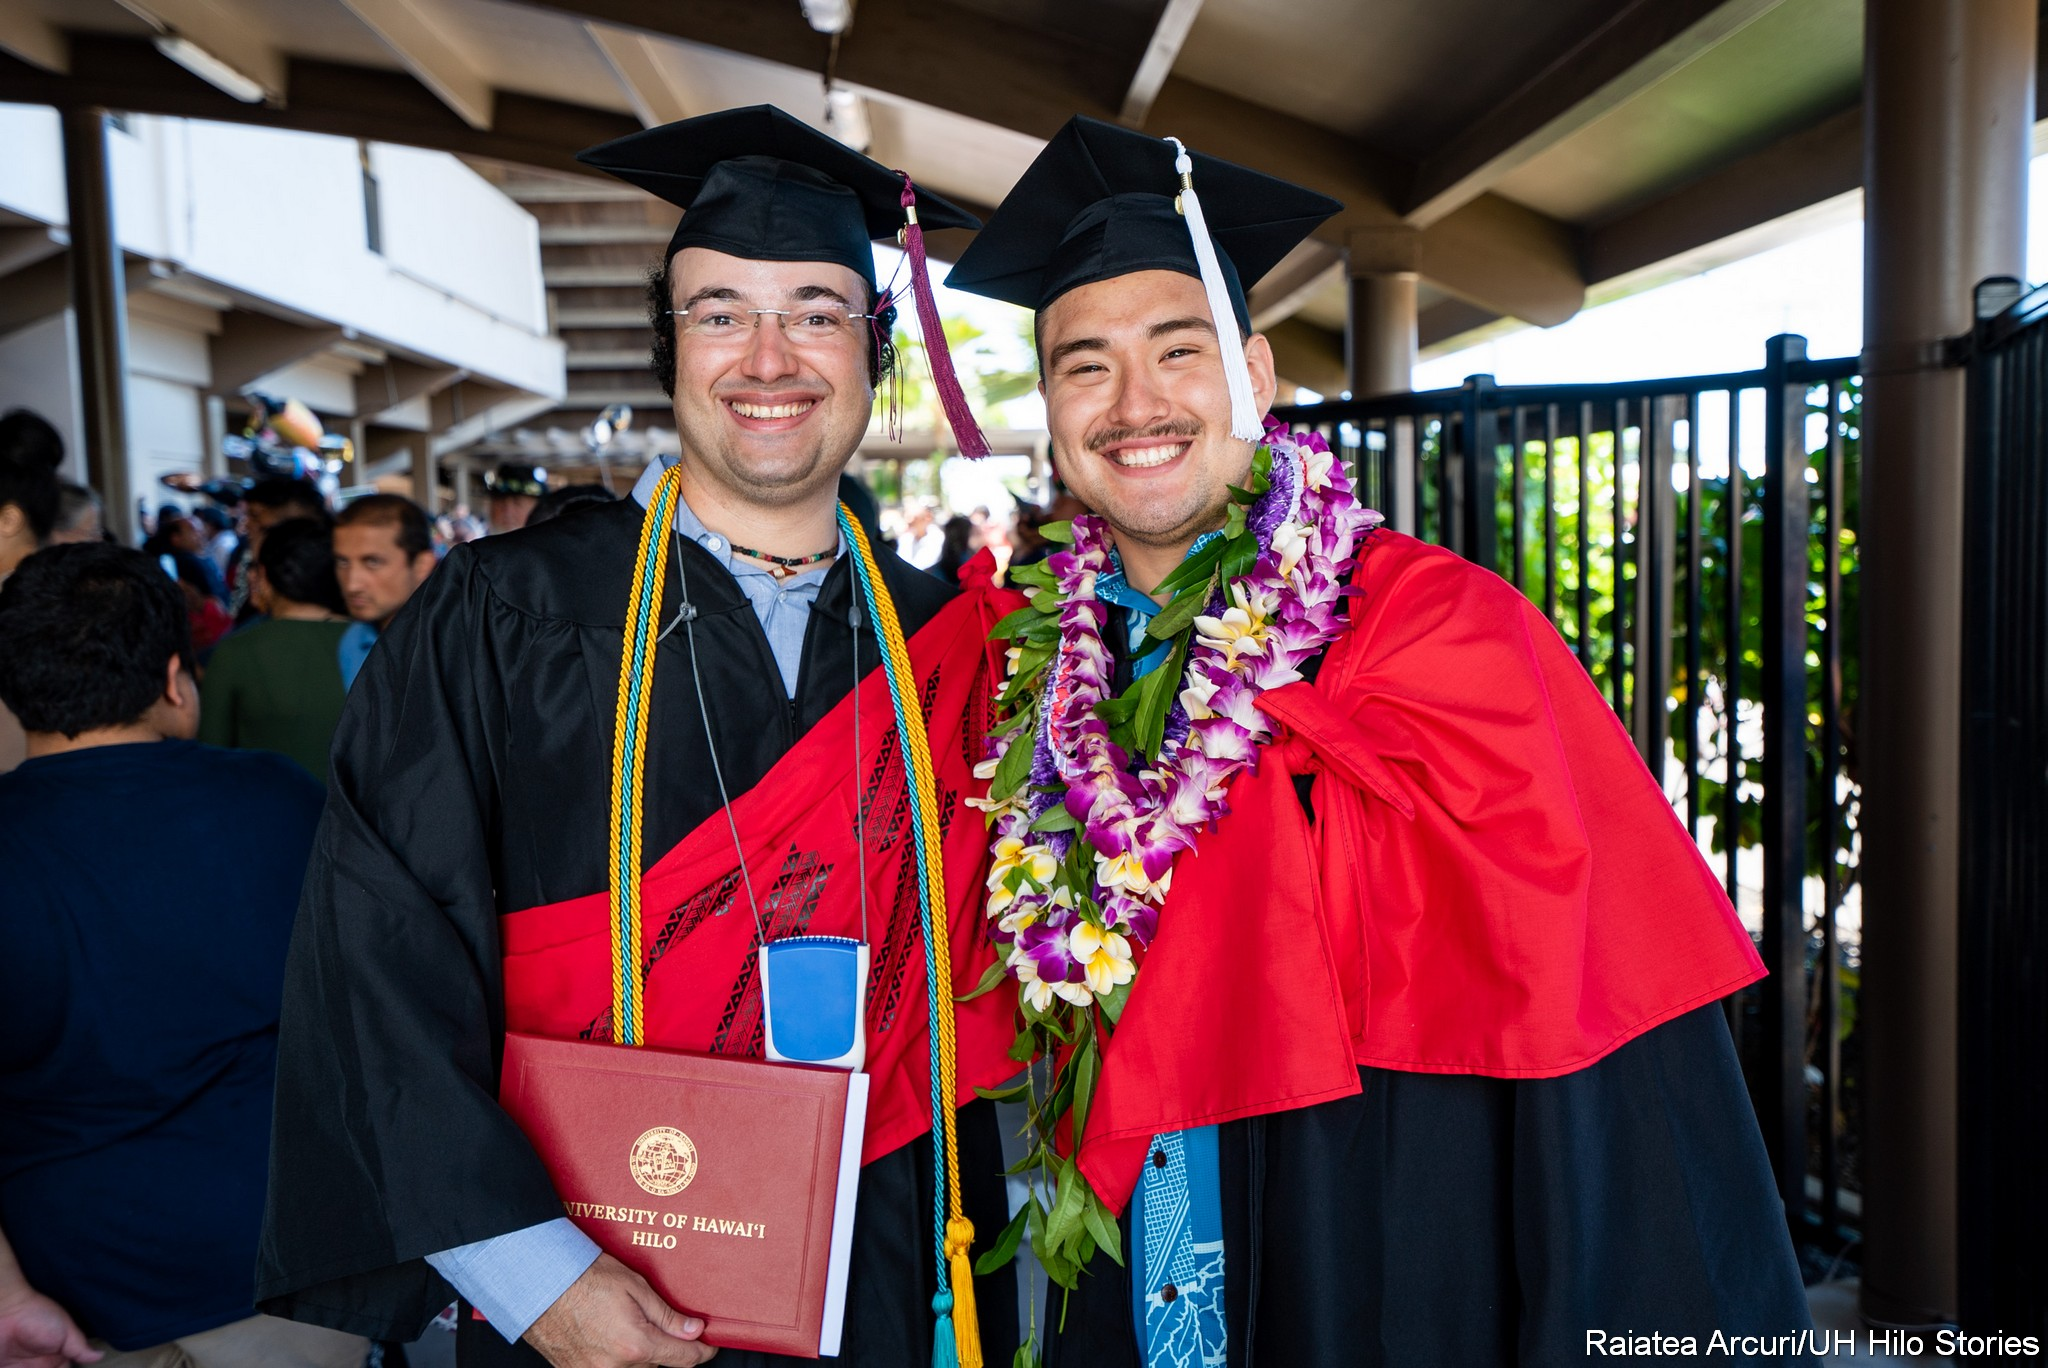 Two male graduates with big smiles pose for photo.